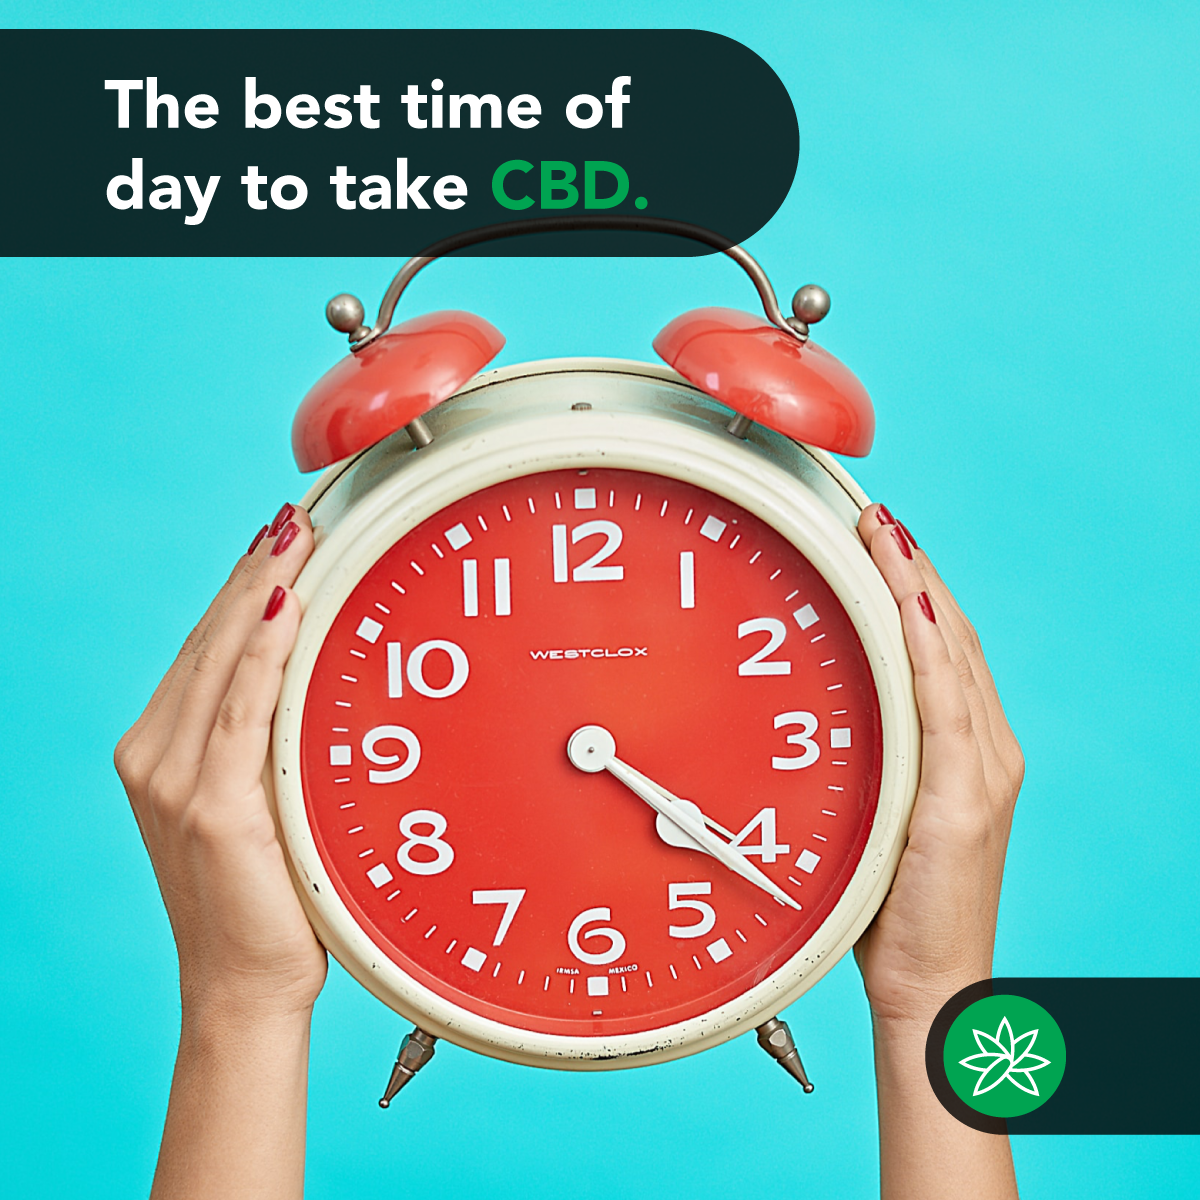 The best time of day to take CBD